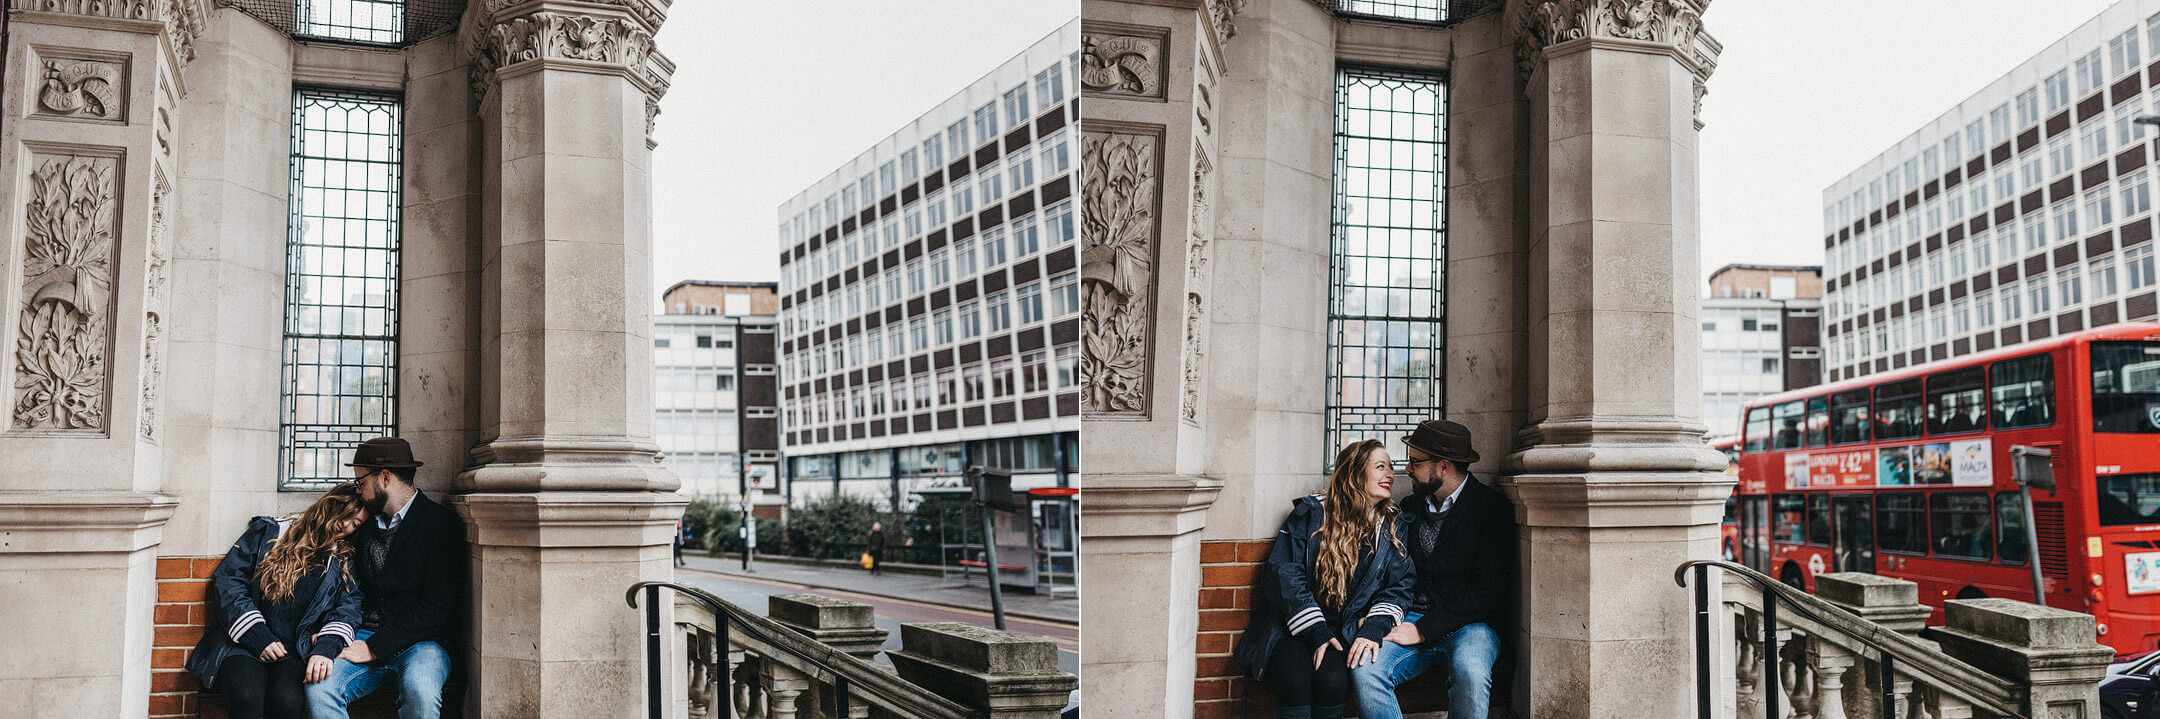 Sam & Remy – A Romance in East Croydon, London